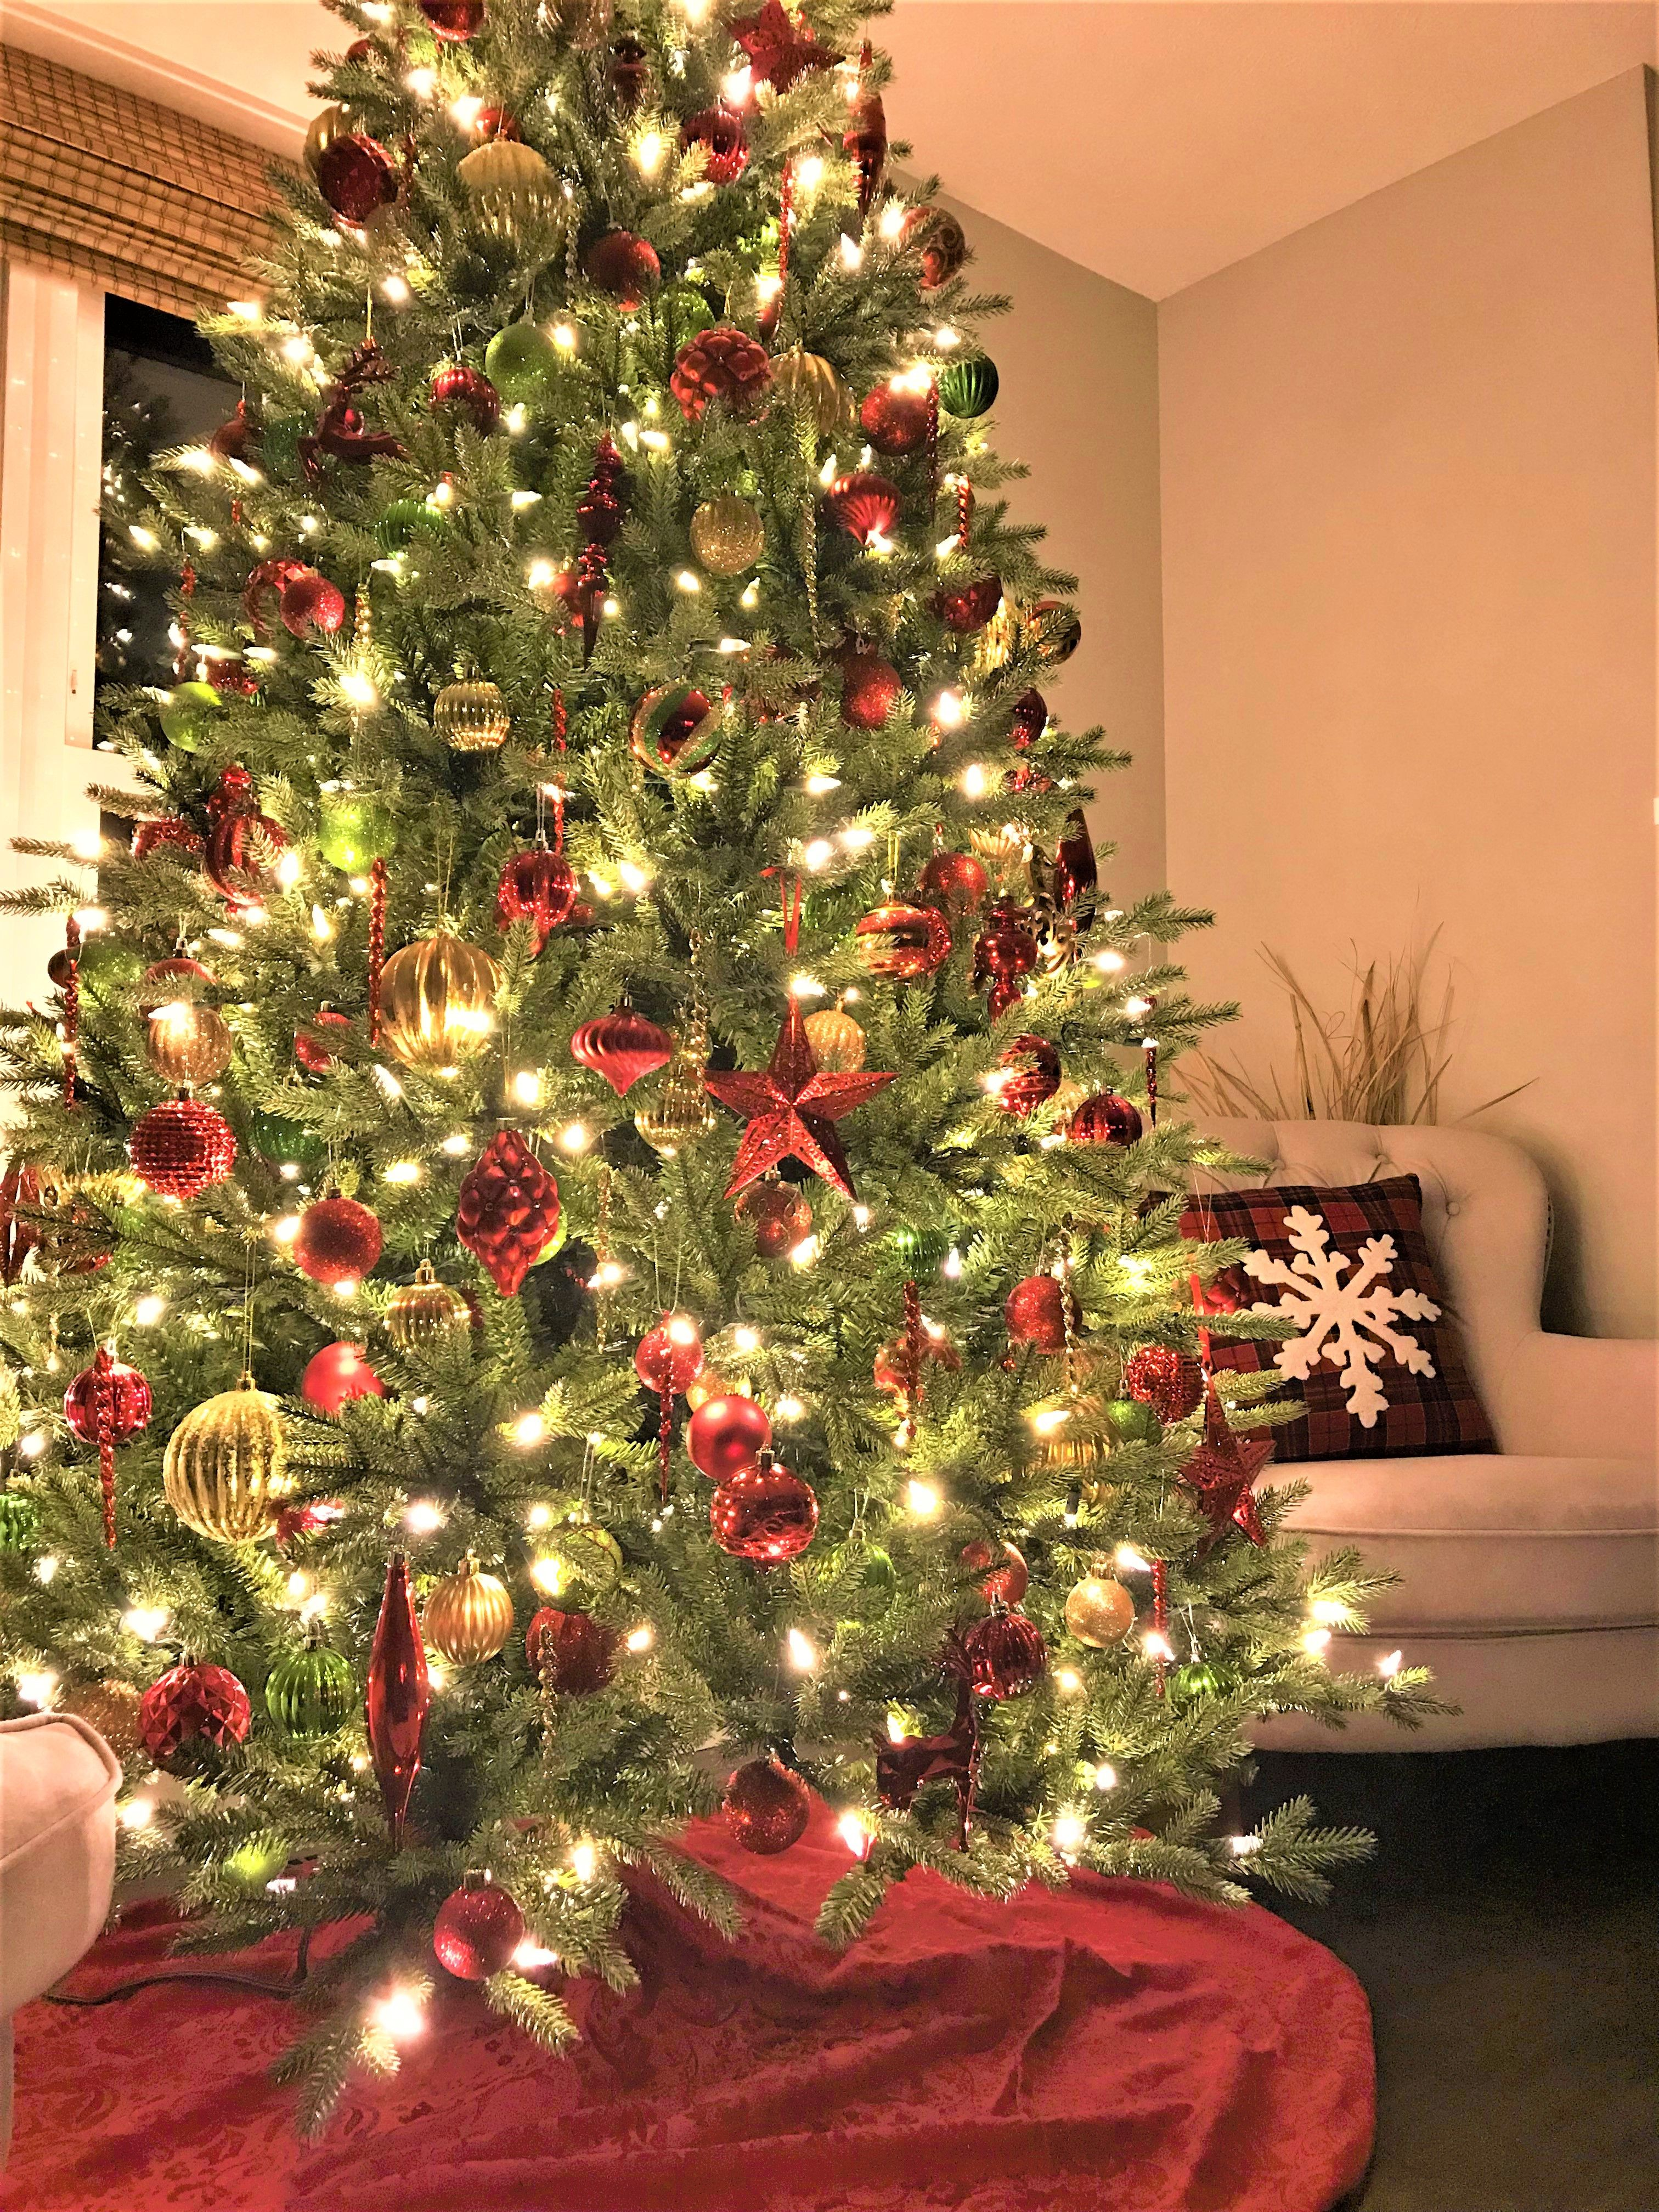 Red Green Gold : green, Christmas,, Traditional, Colors,, Green,, Christmas, Tree,, Decorations